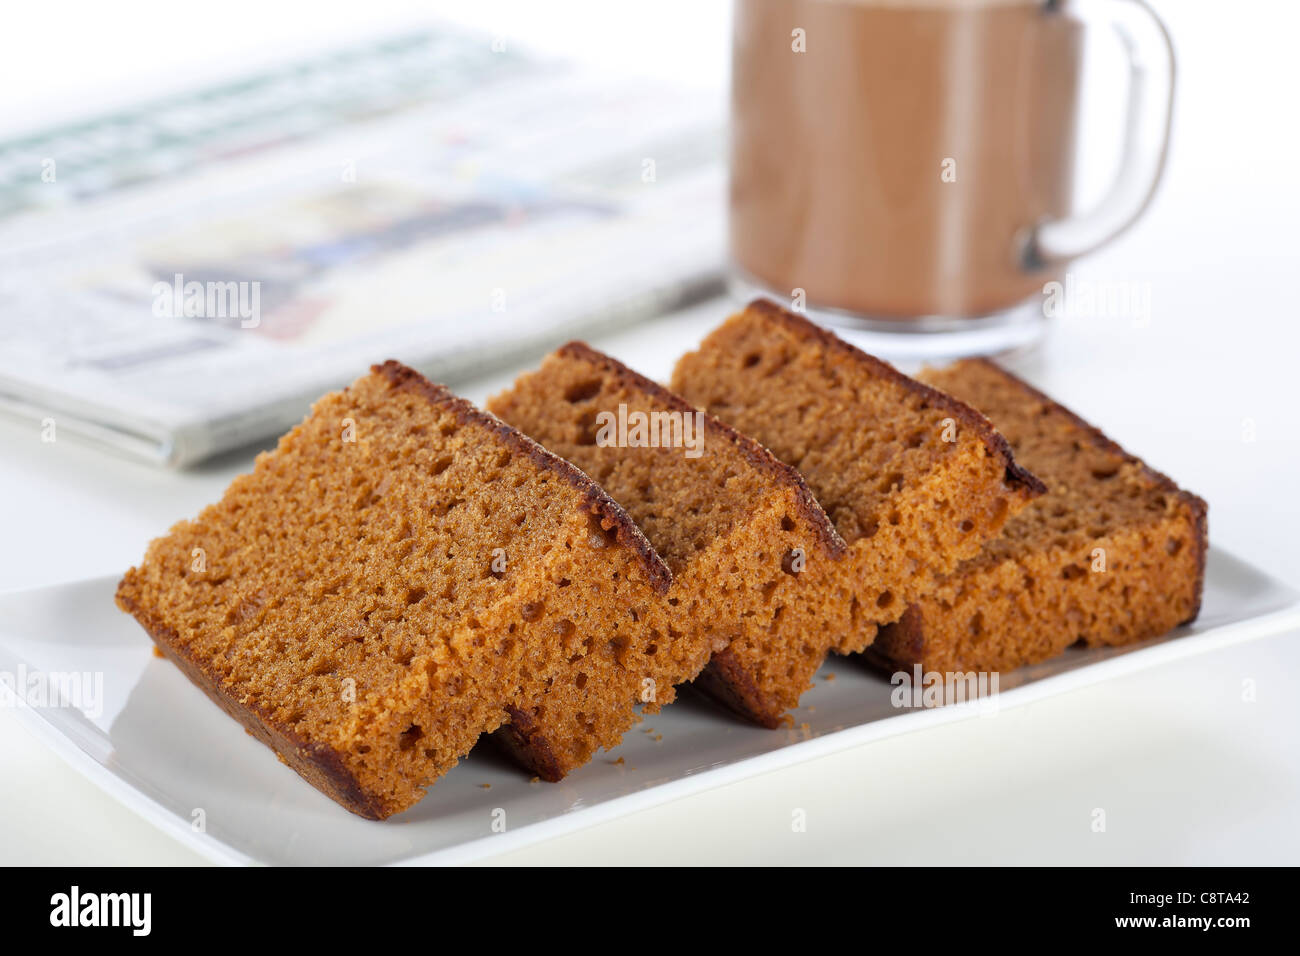 Dutch breakfast cake, often spiced with cloves cinnamon and nutmeg. A coffee and newspaper in the background. - Stock Image